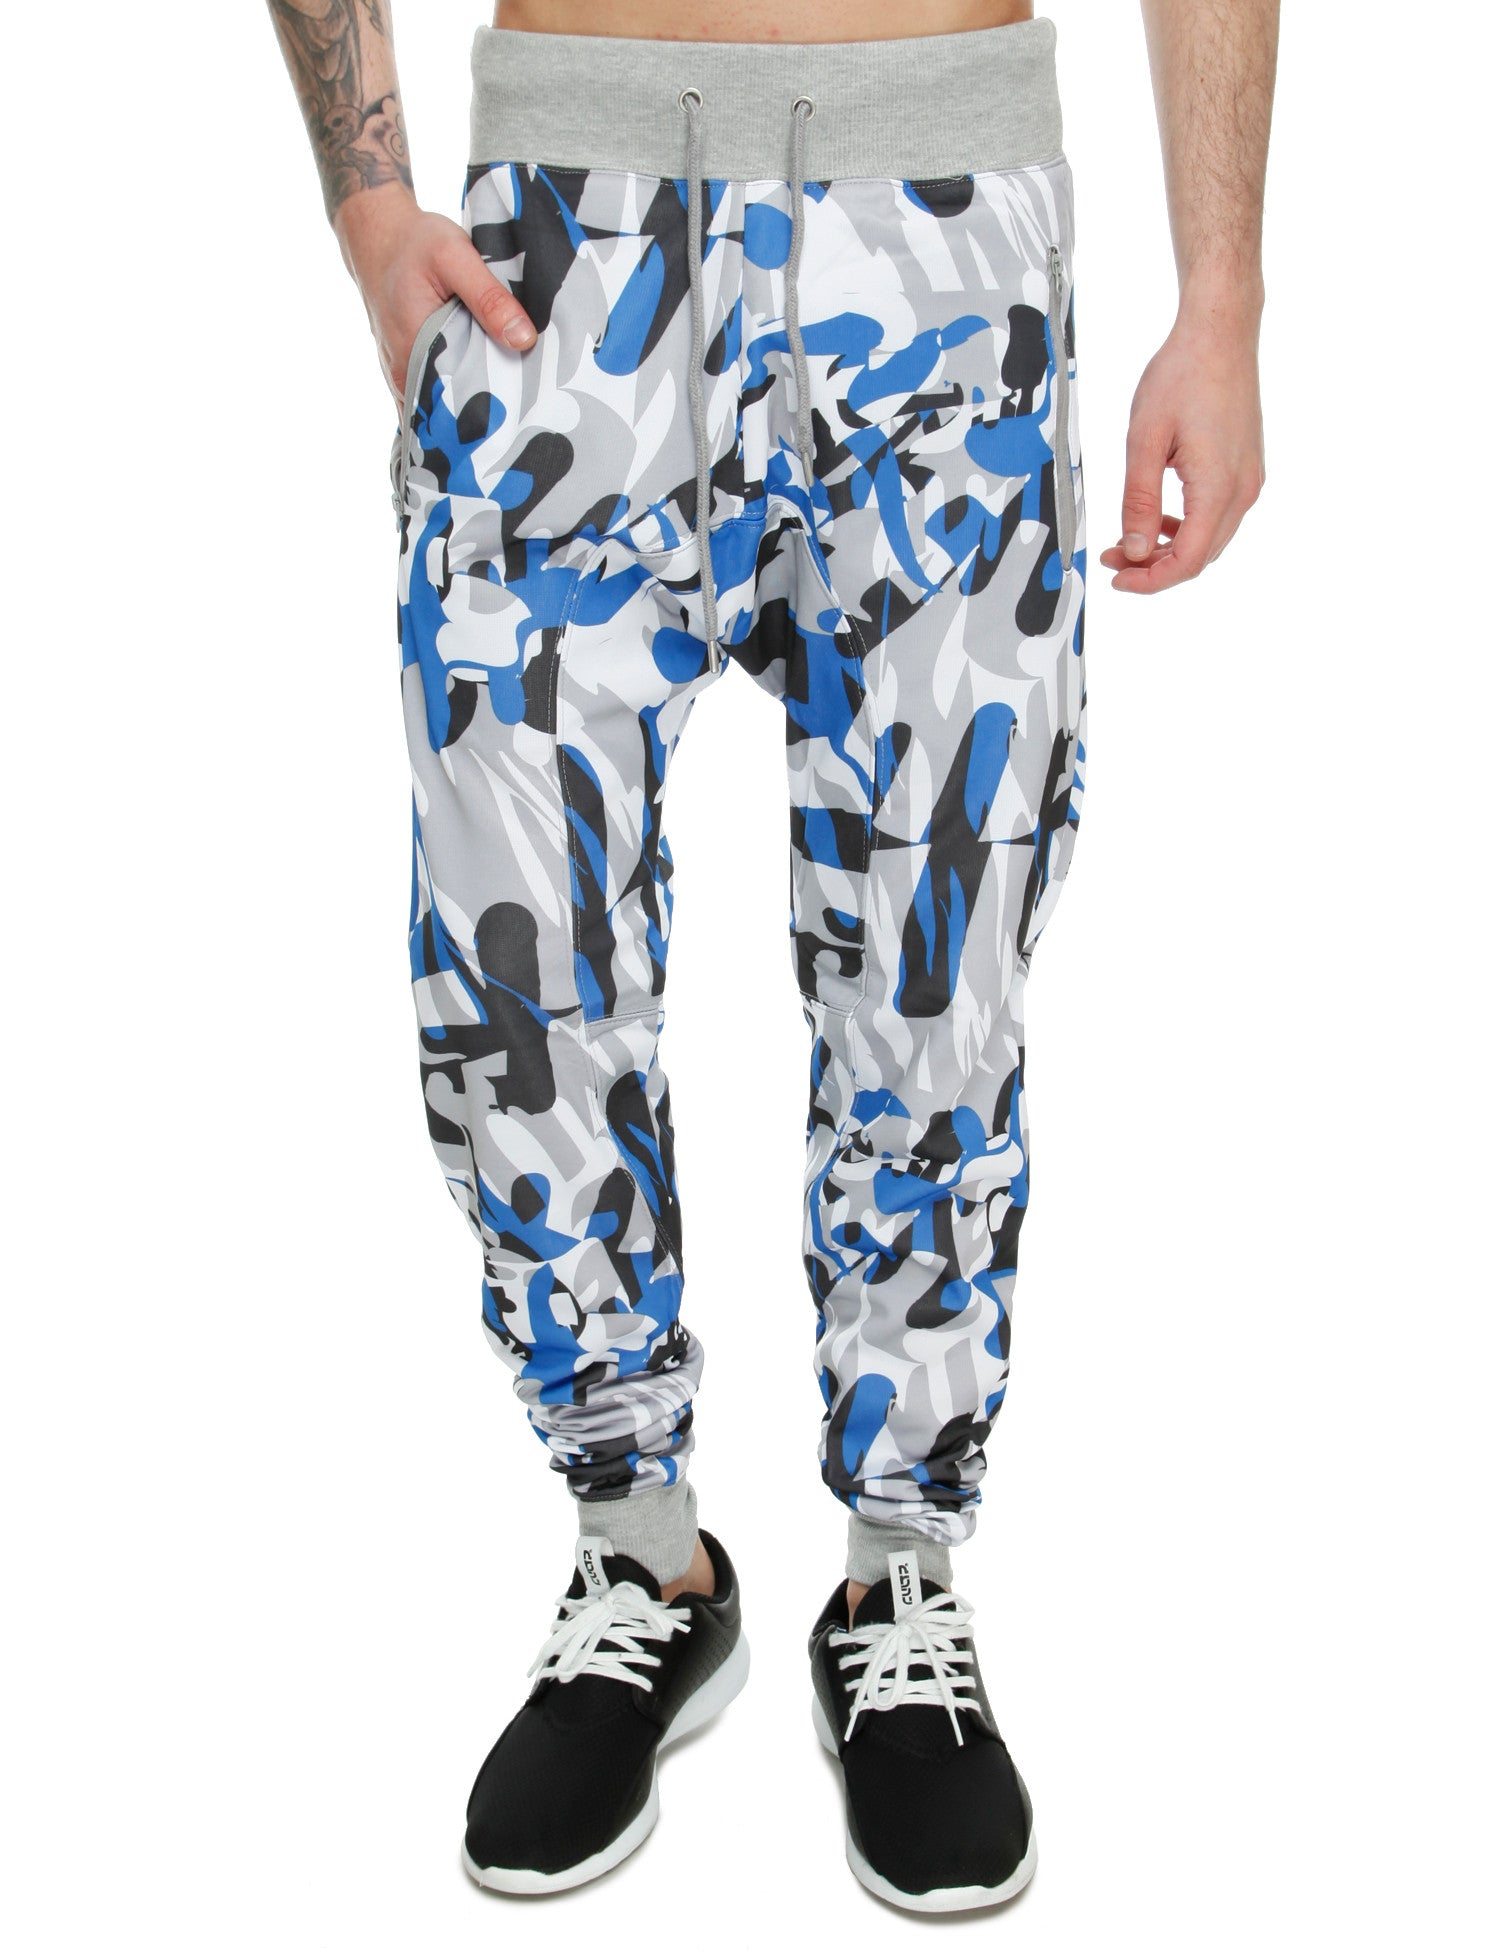 Royal Blue Print Sweatpant 27020P Blue